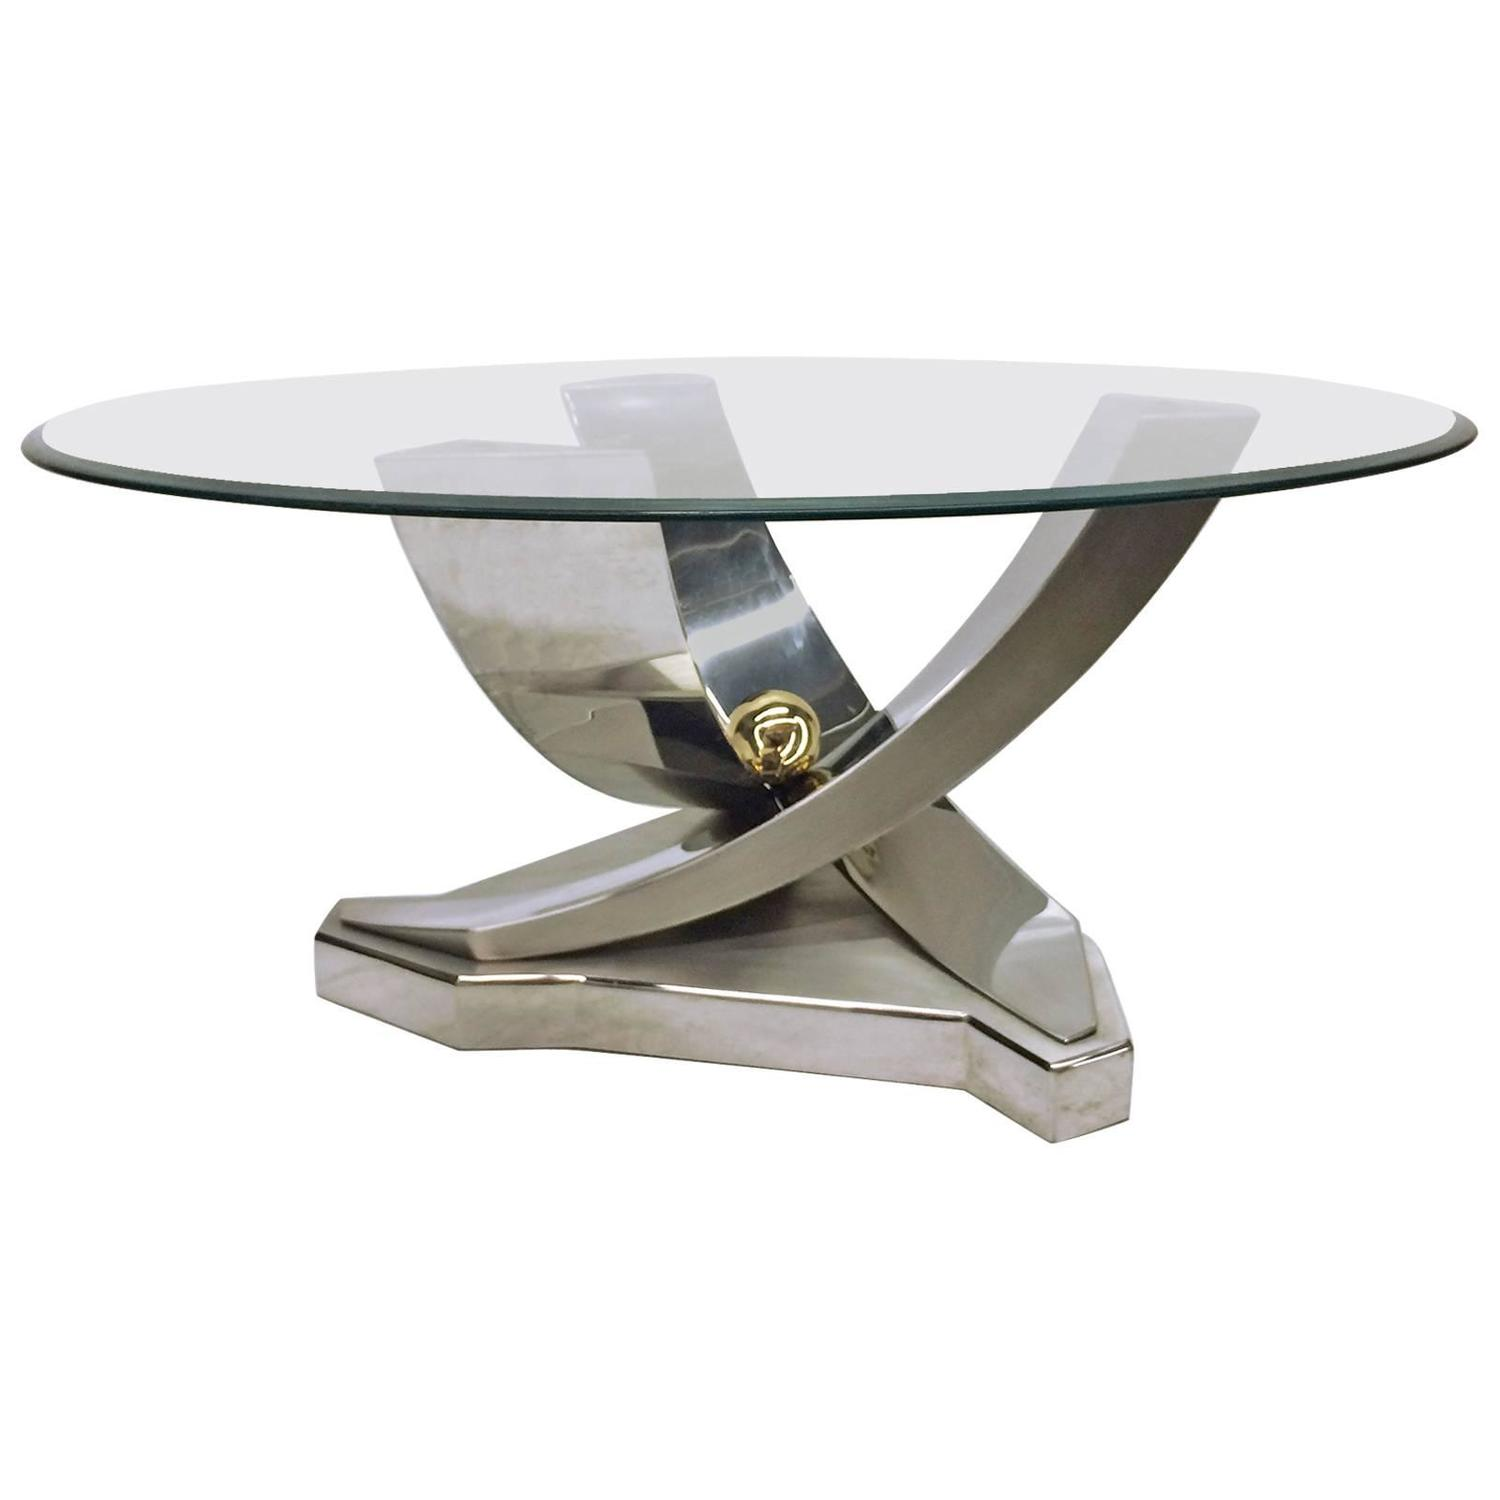 Stainless Steel Coffee Table: Mix Of Polished Chrome, Brass And Brushed Stainless Steel